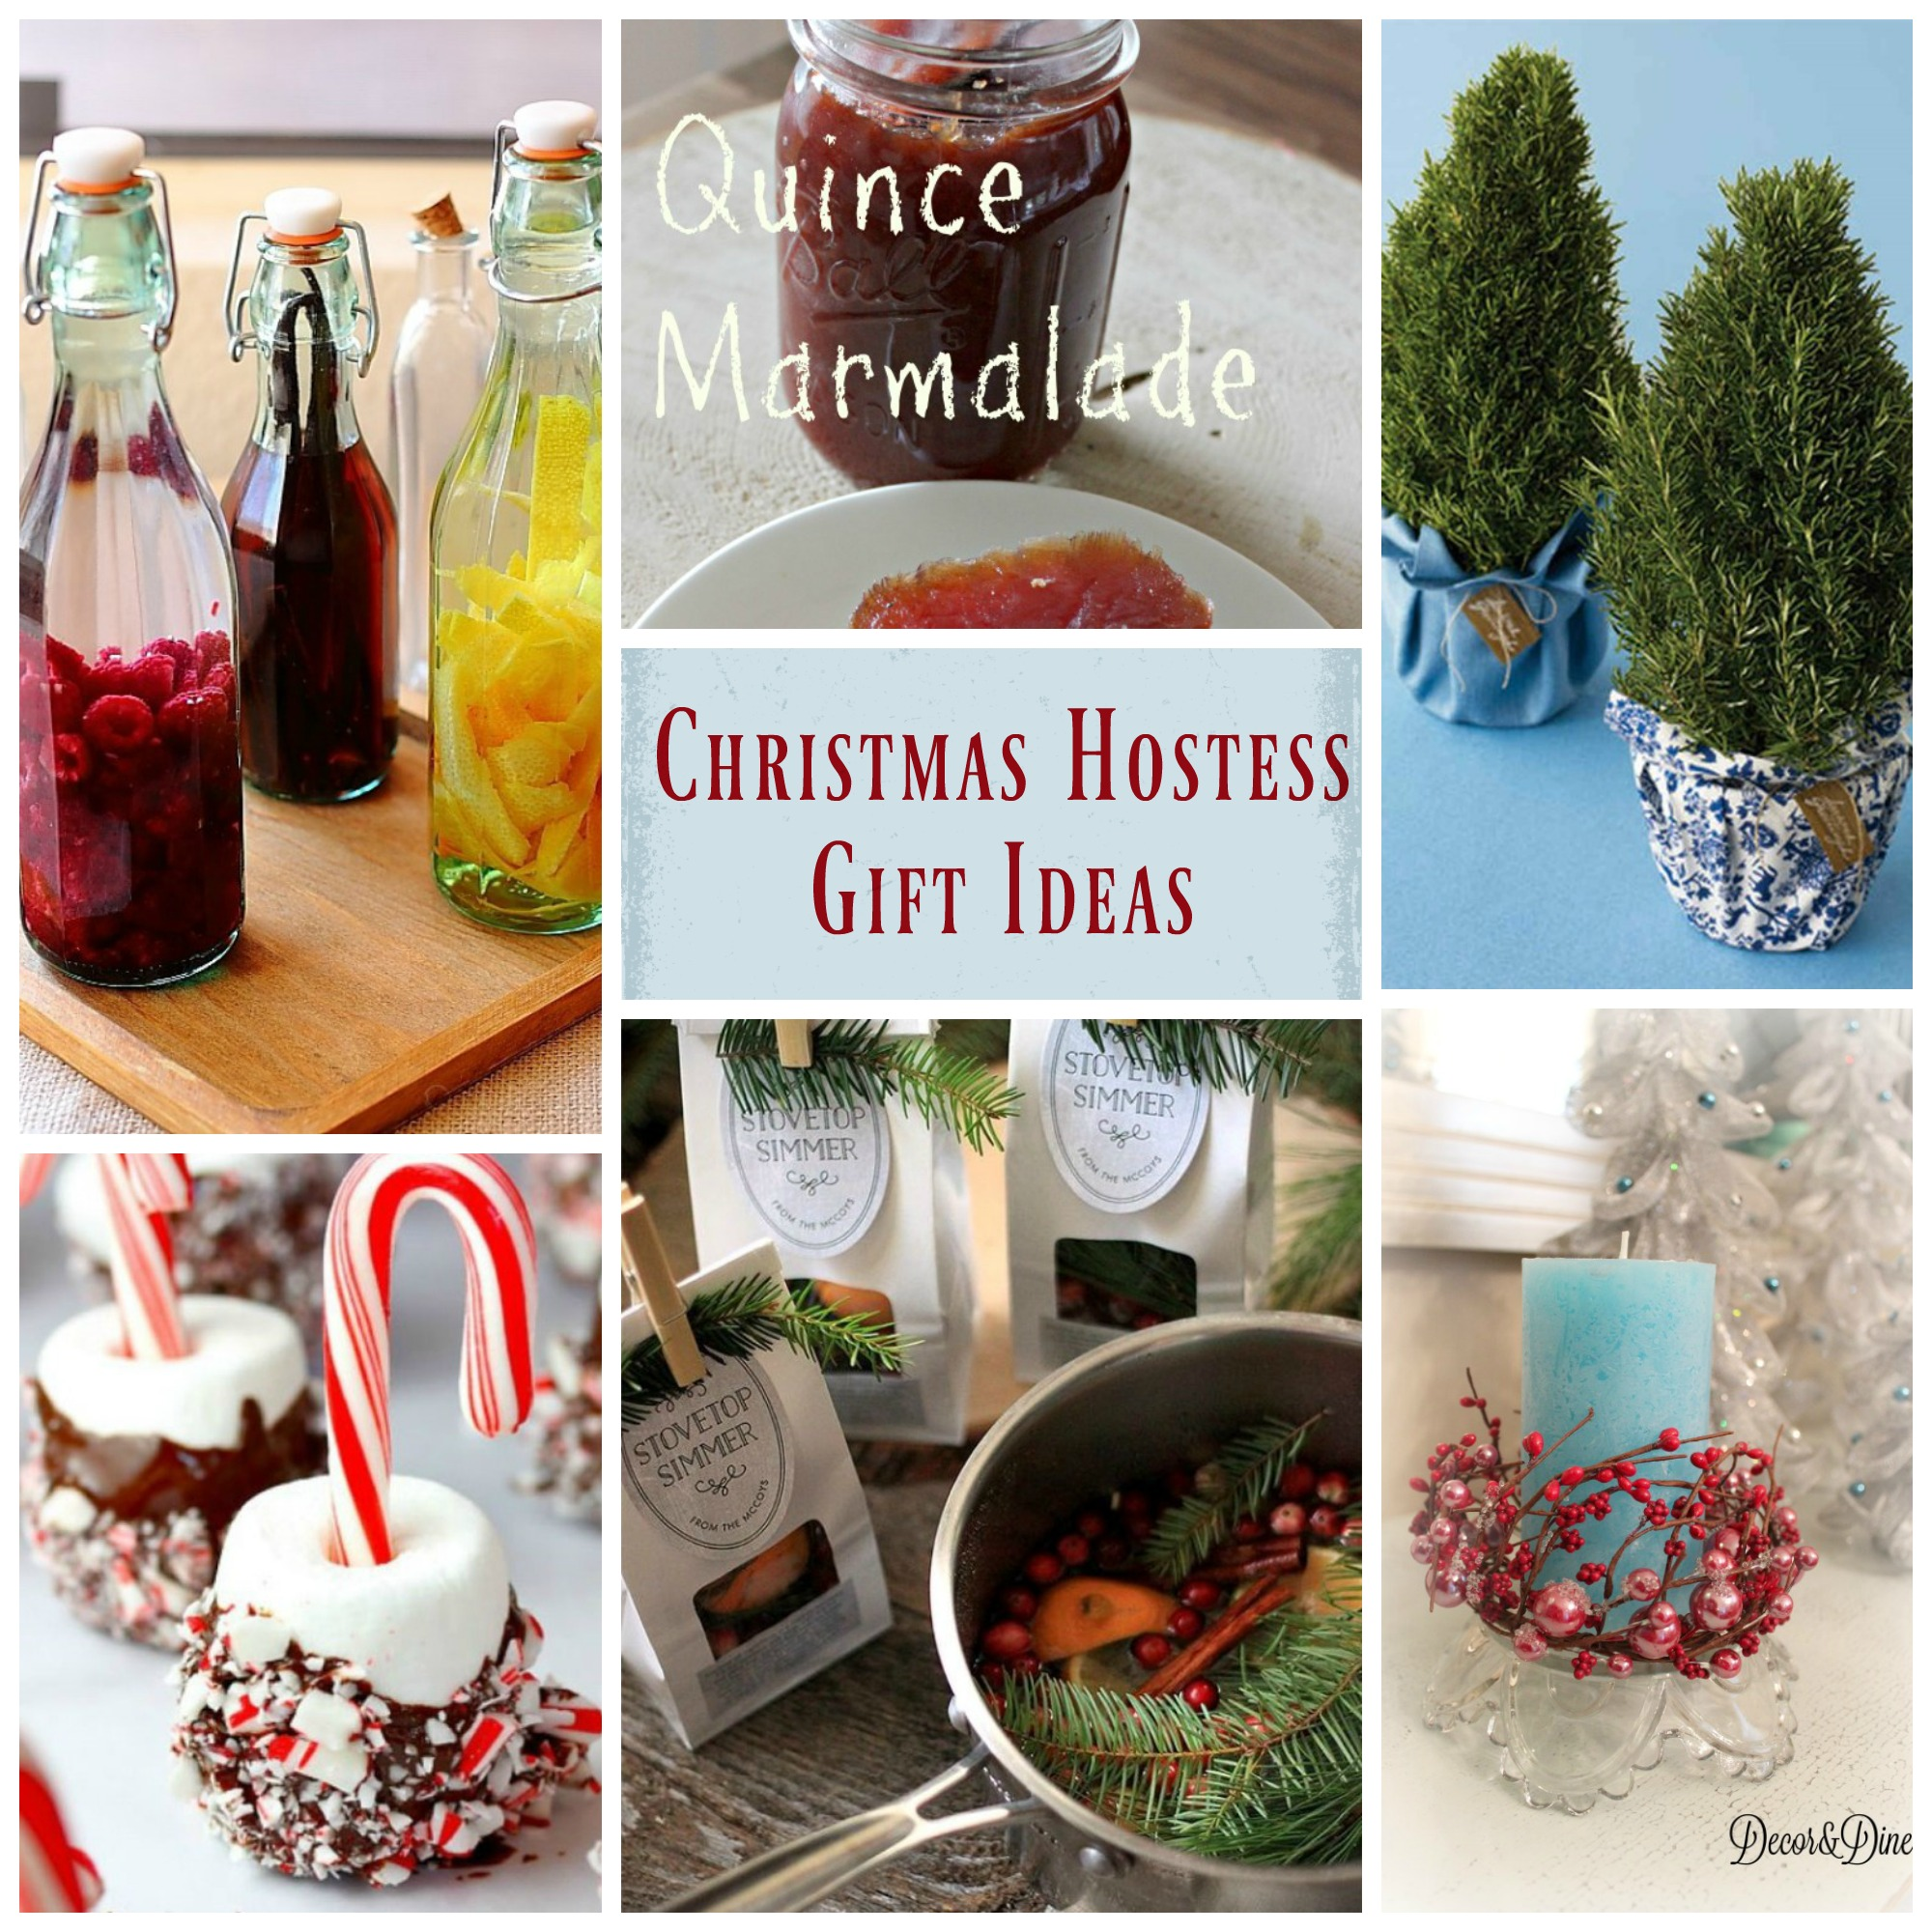 Christmas Hostess Gift Ideas Decor And Dine